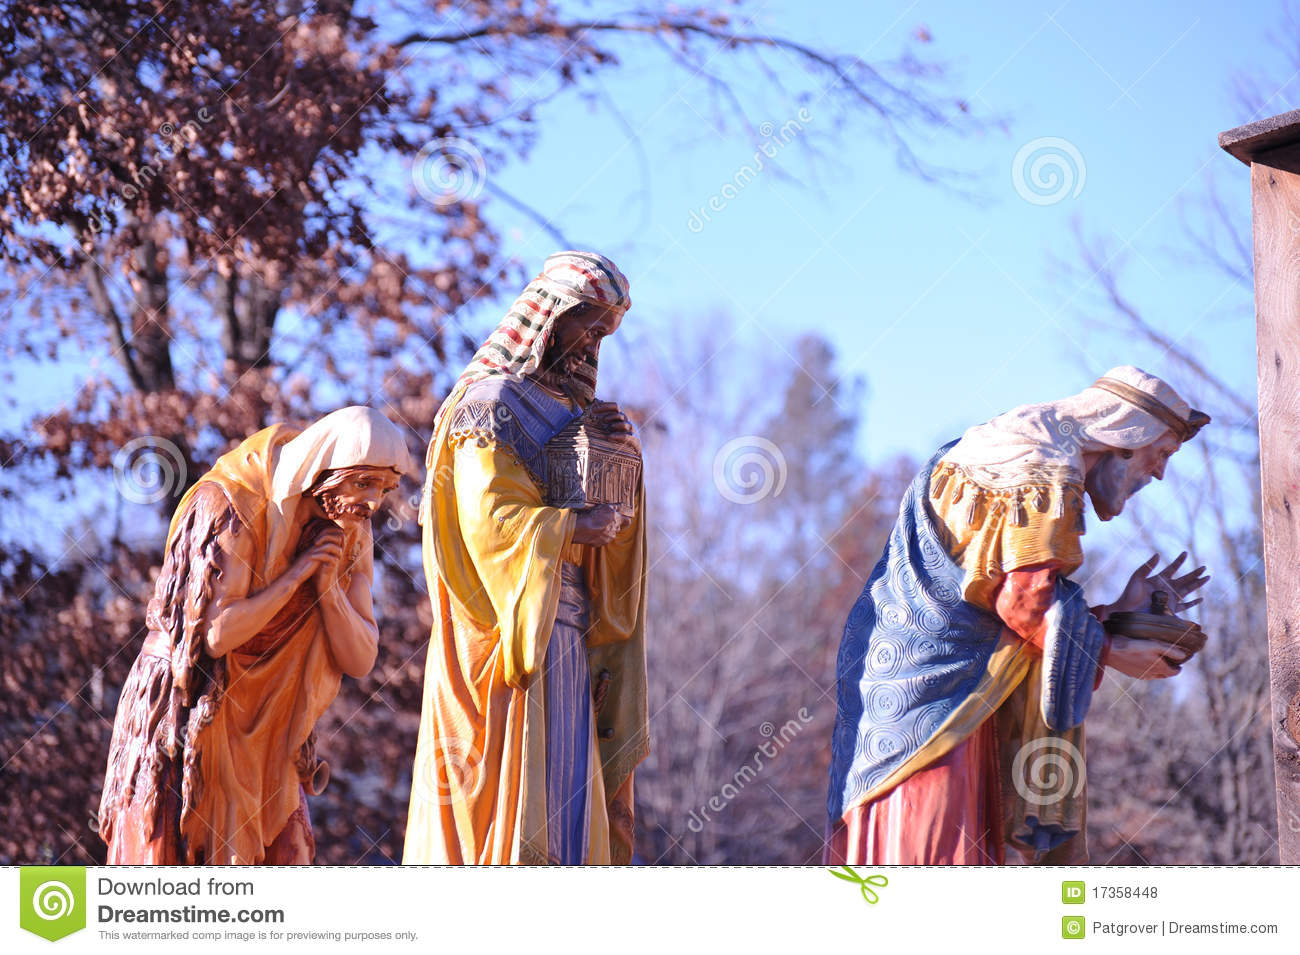 Stunning life size nativity scene three wise men royalty free stock